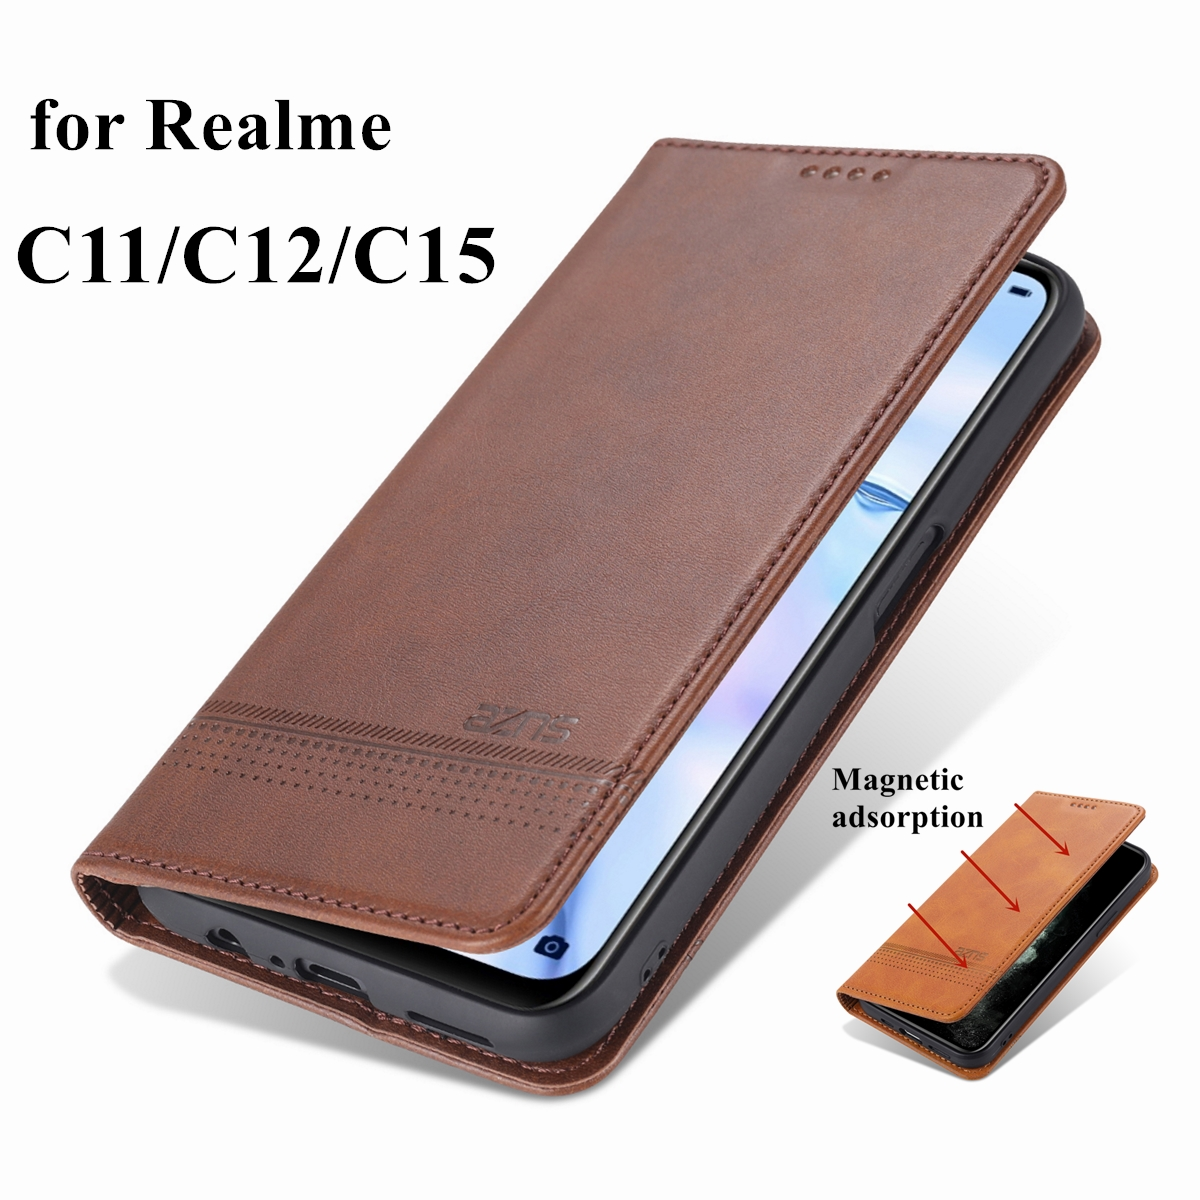 Deluxe magnetic adsorption leather case for OPPO Realme C15 C12 C11 C25 flip cover wallet protective case capa fundas